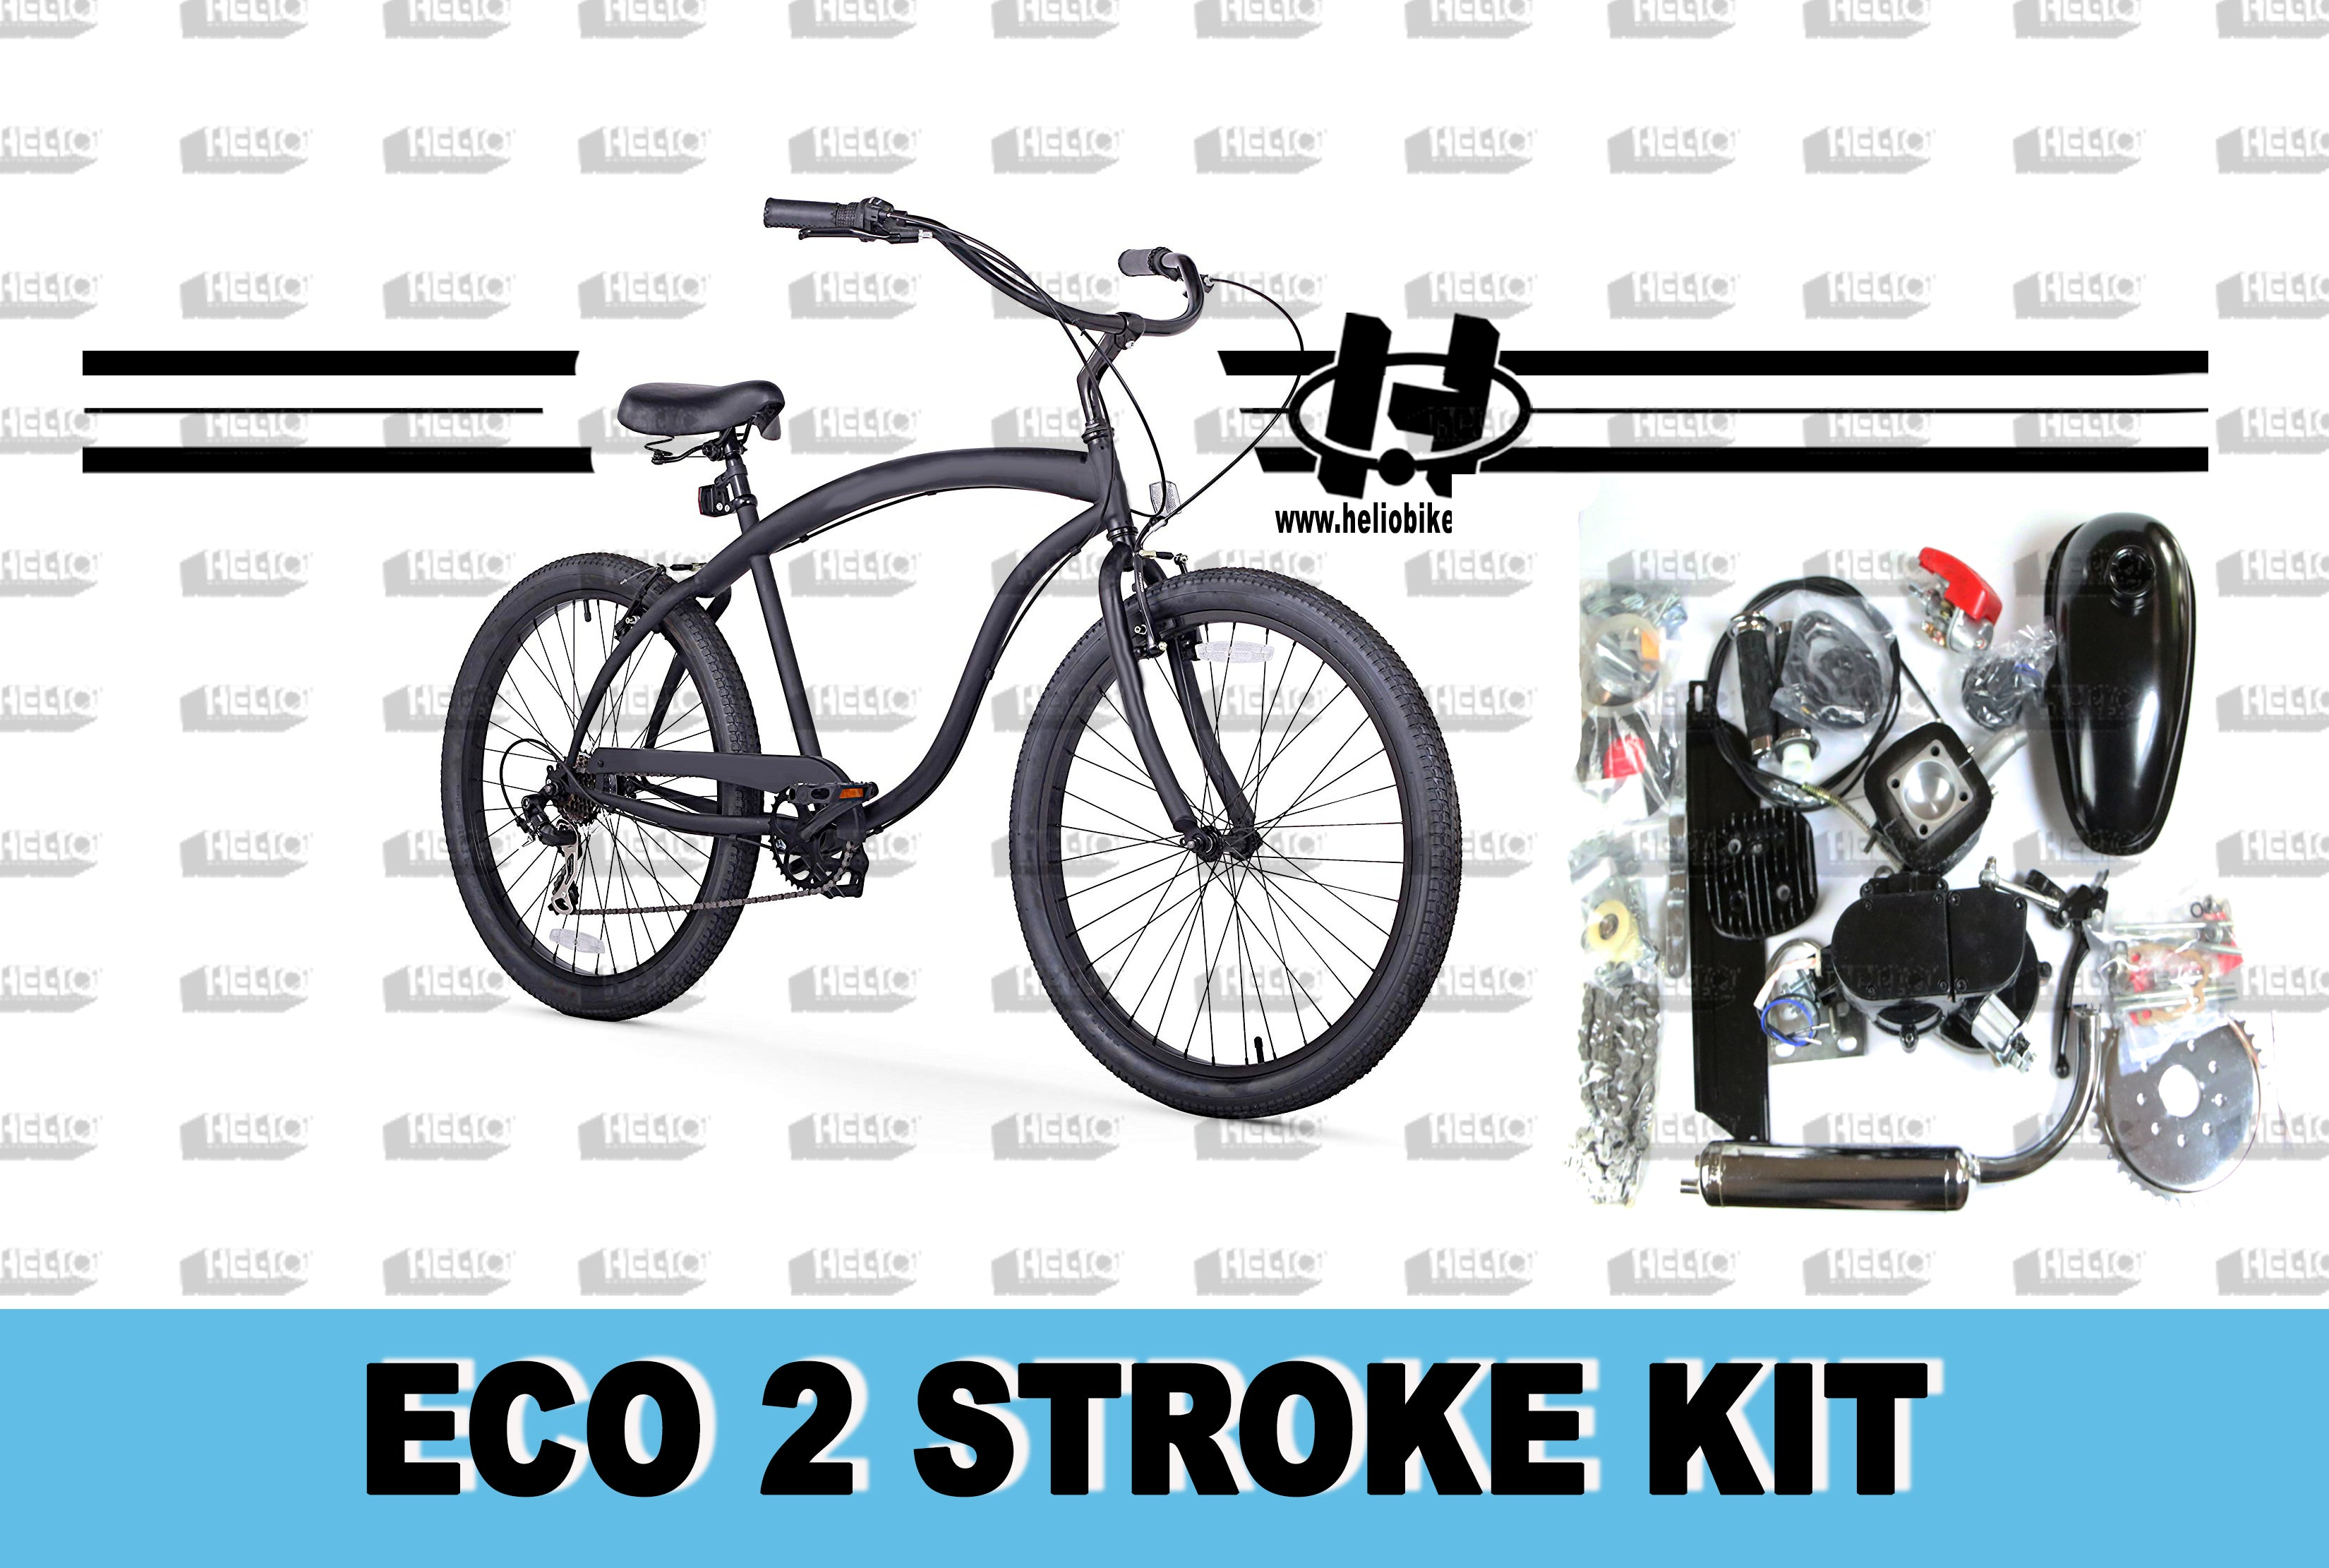 ECO 2 Stroke Kit with Bike